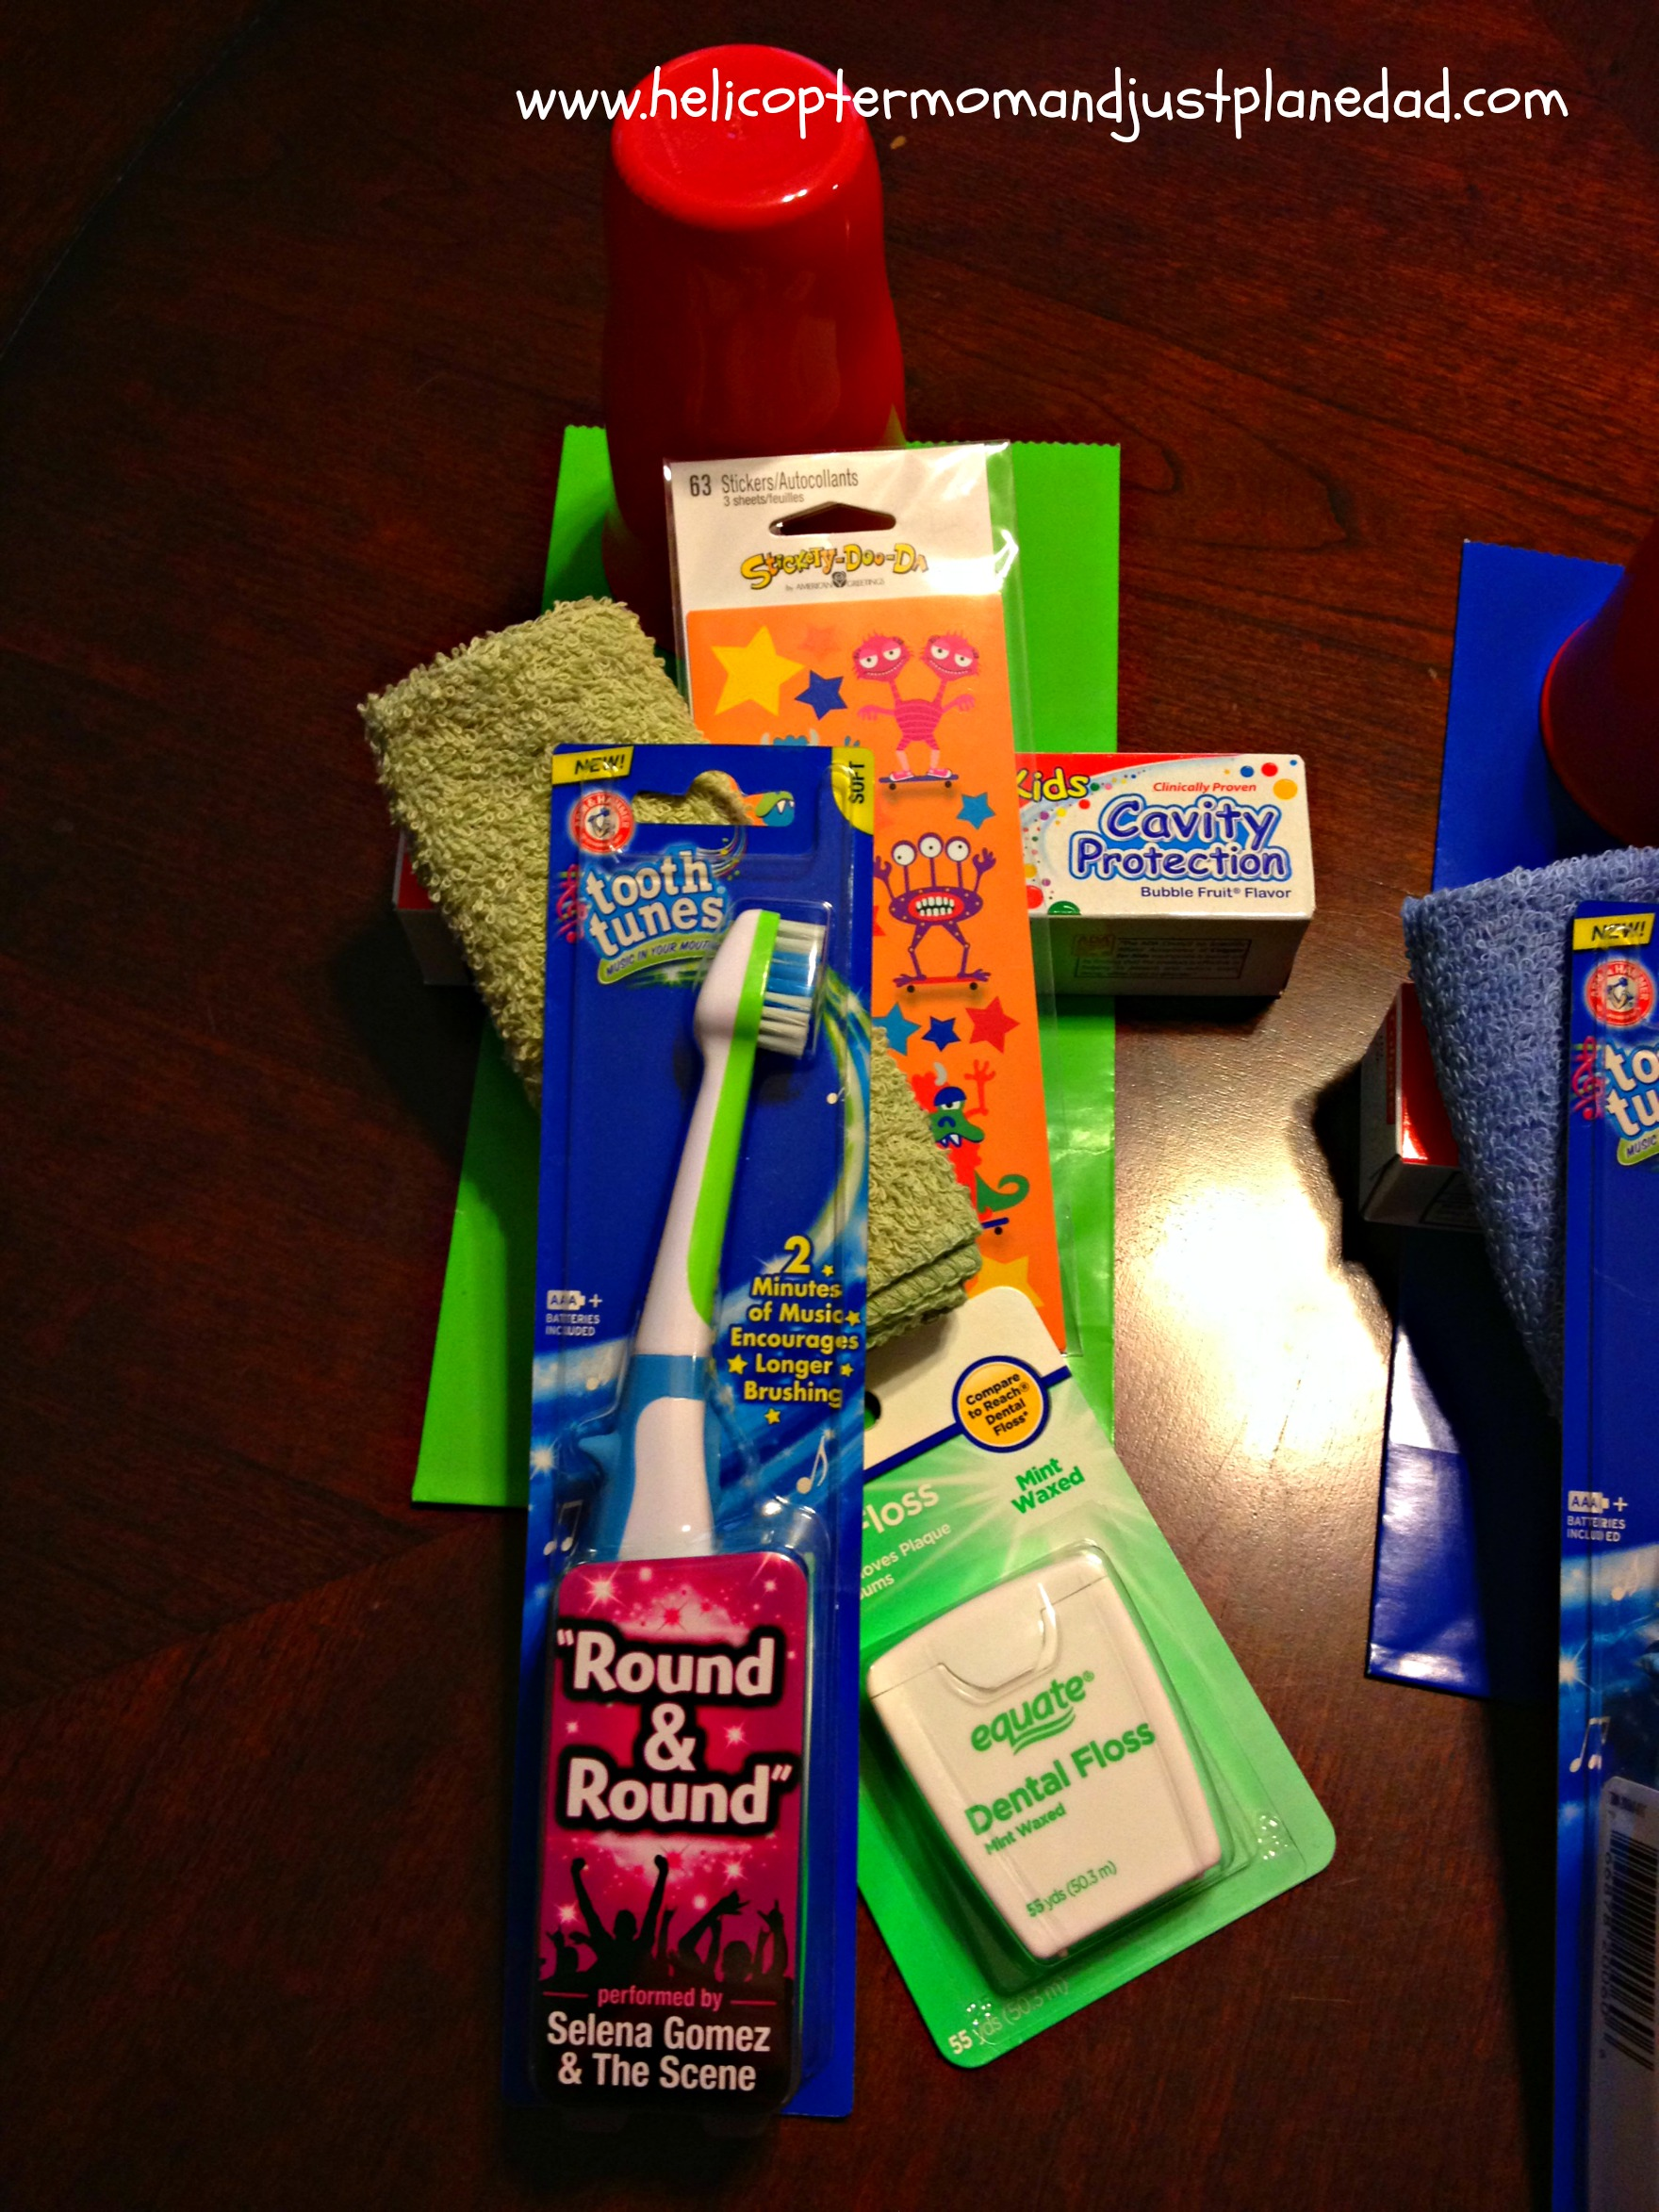 floss, toothbrush and #Spinbrush4Kids donation